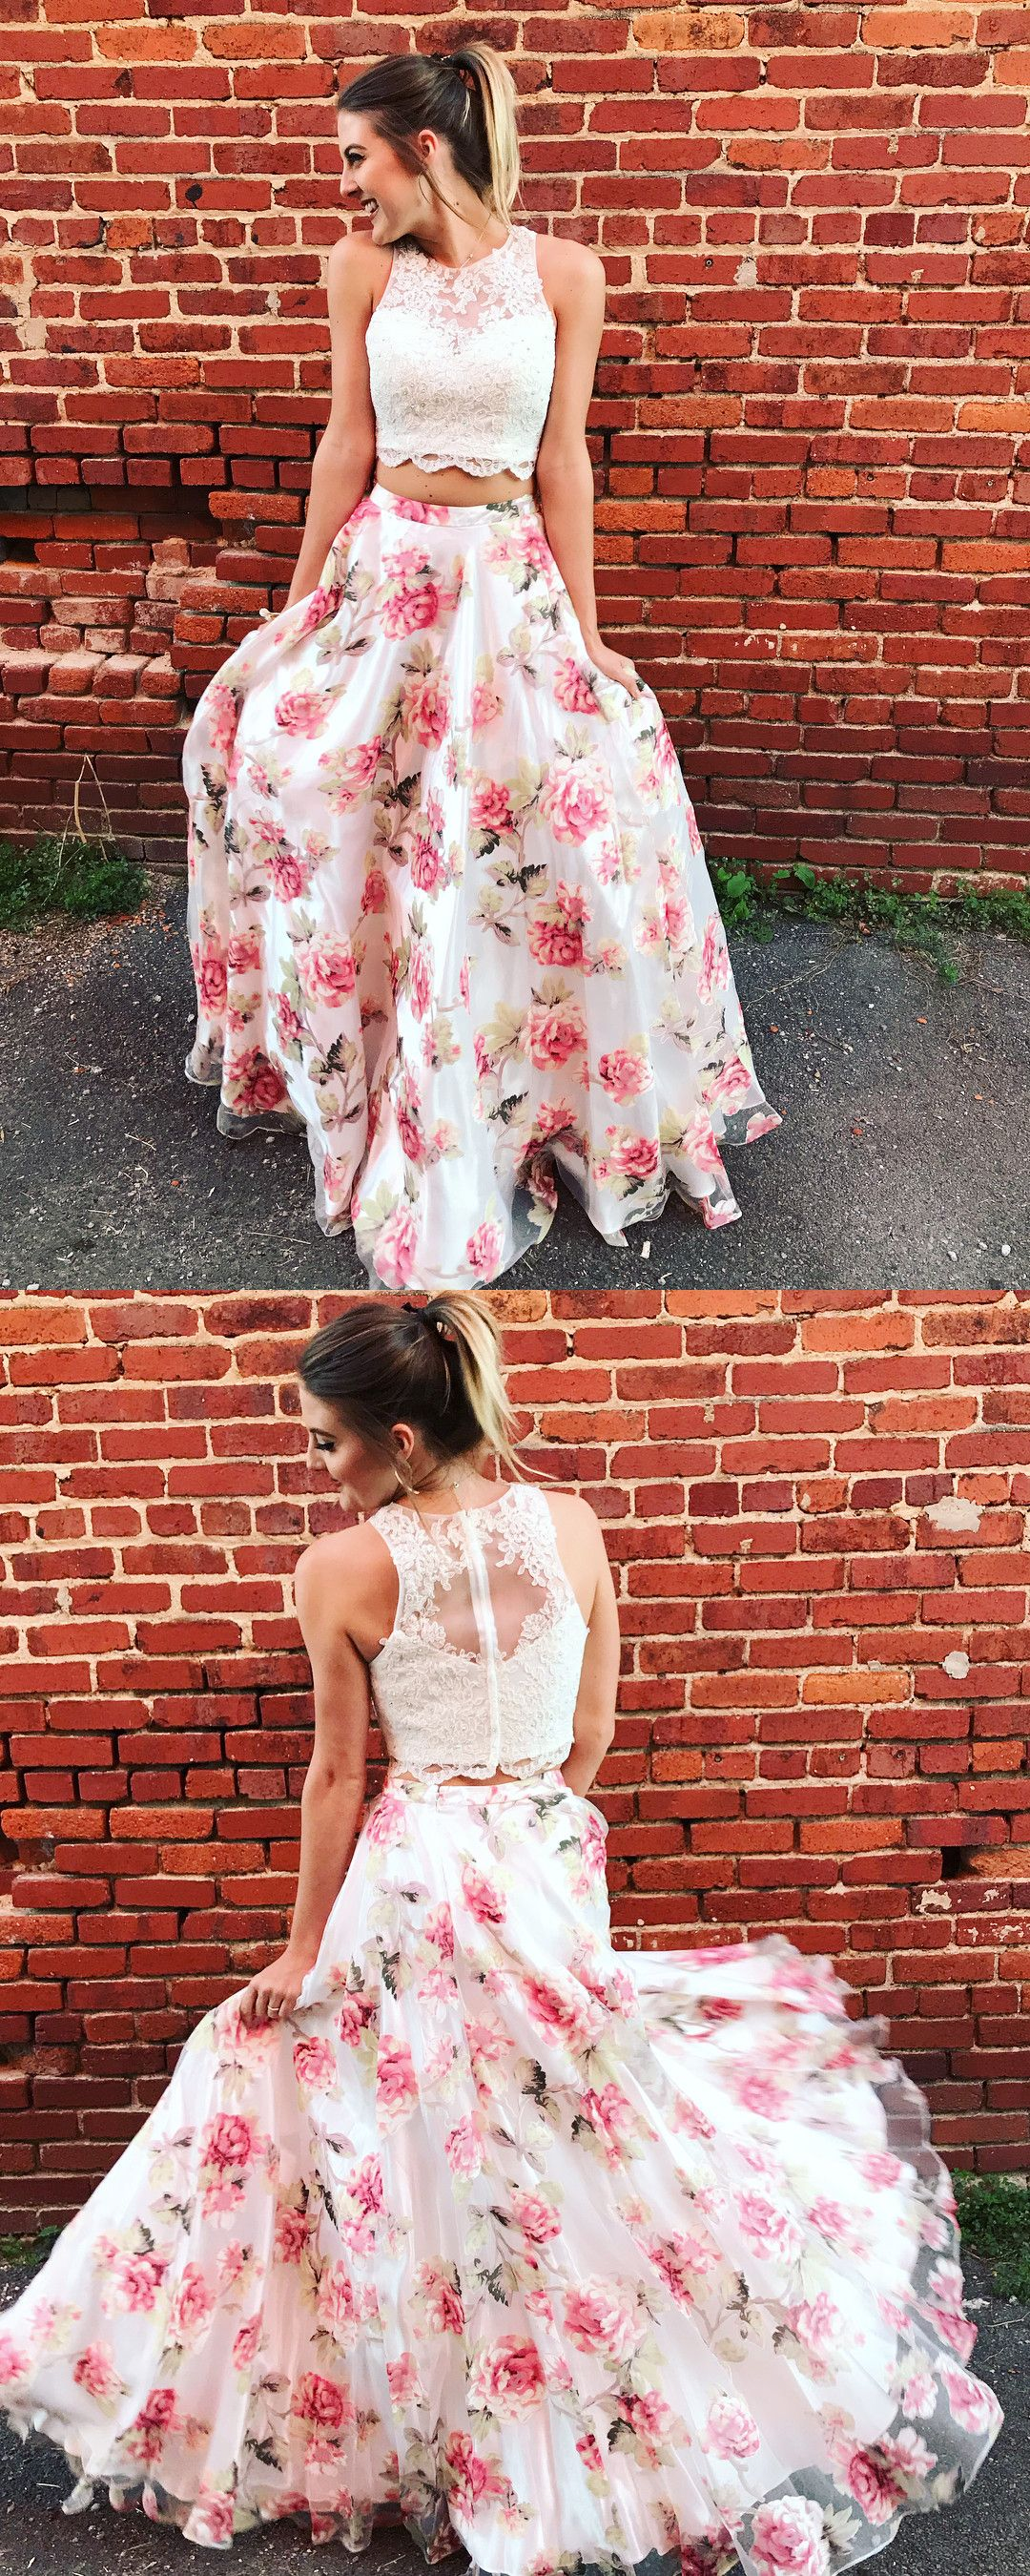 dress two piece dress long dress white lace and pink floral